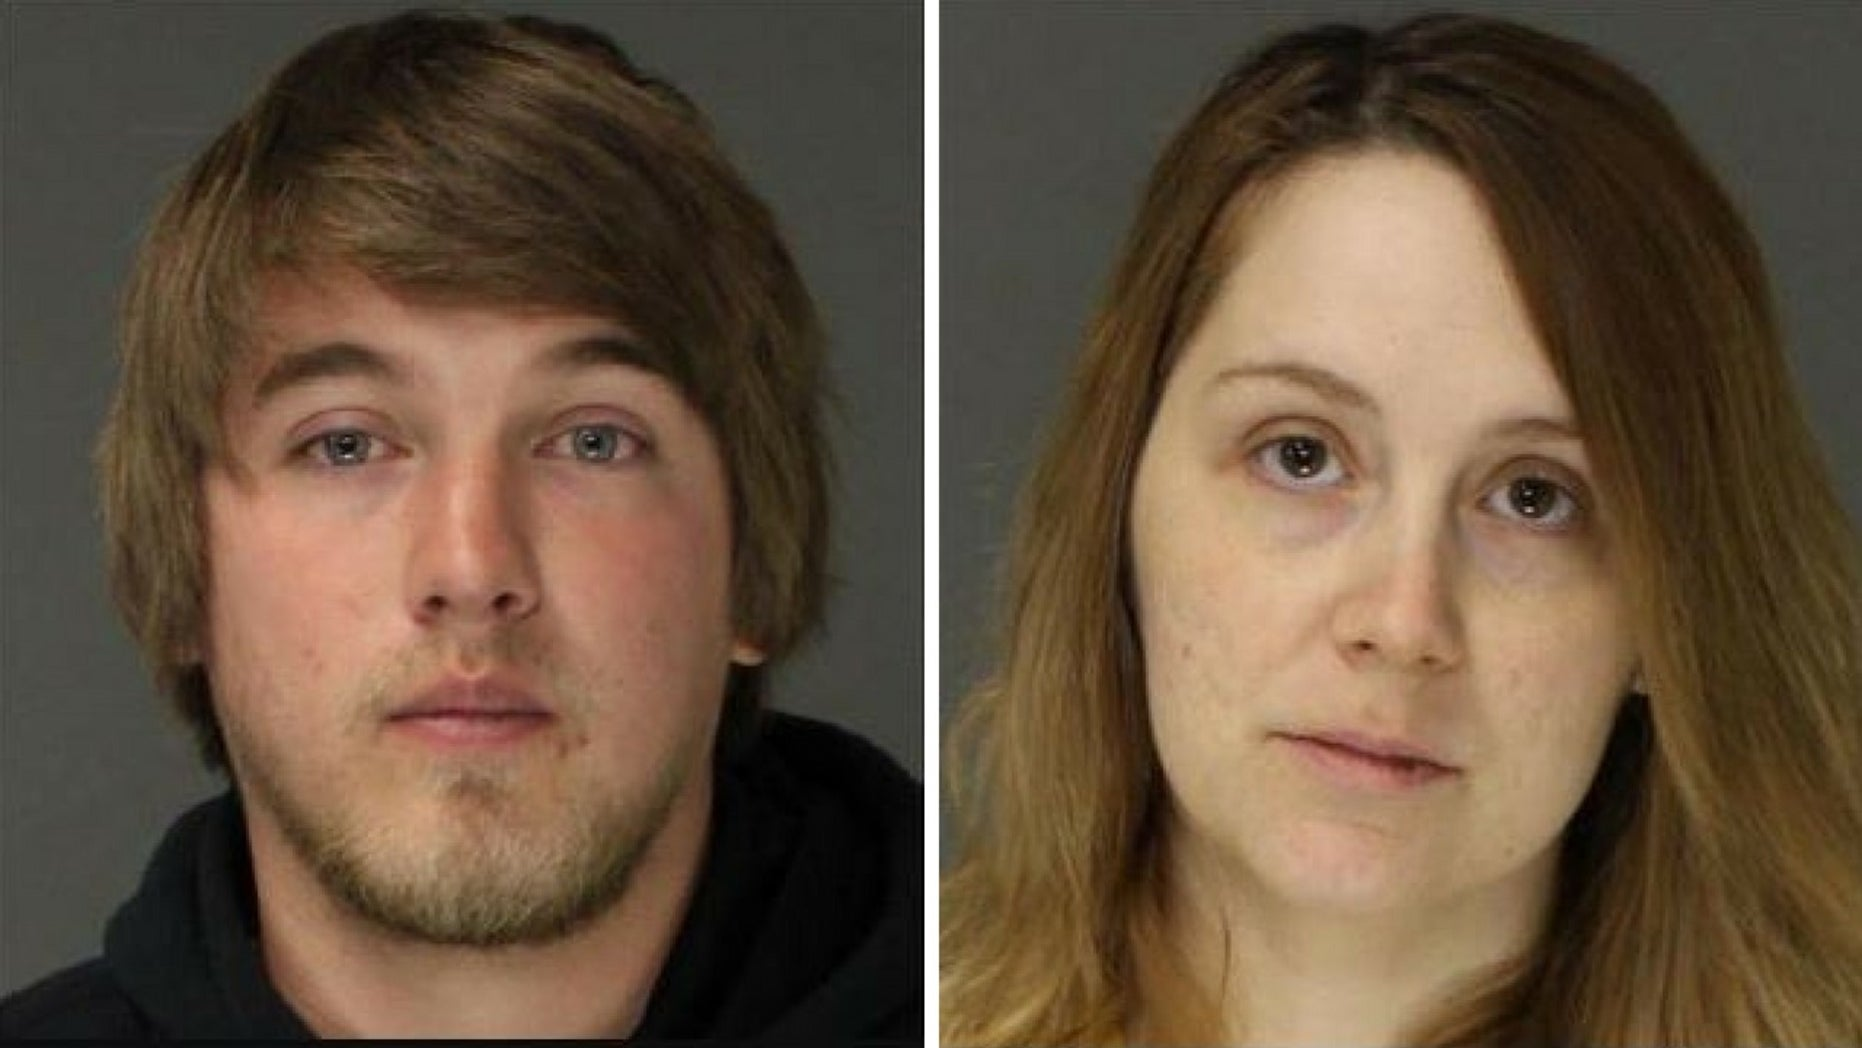 Shaun Oxenreider, 25, and Samantha Trump, 27, are facing criminal homicide charges in connection with the death of their daughter.